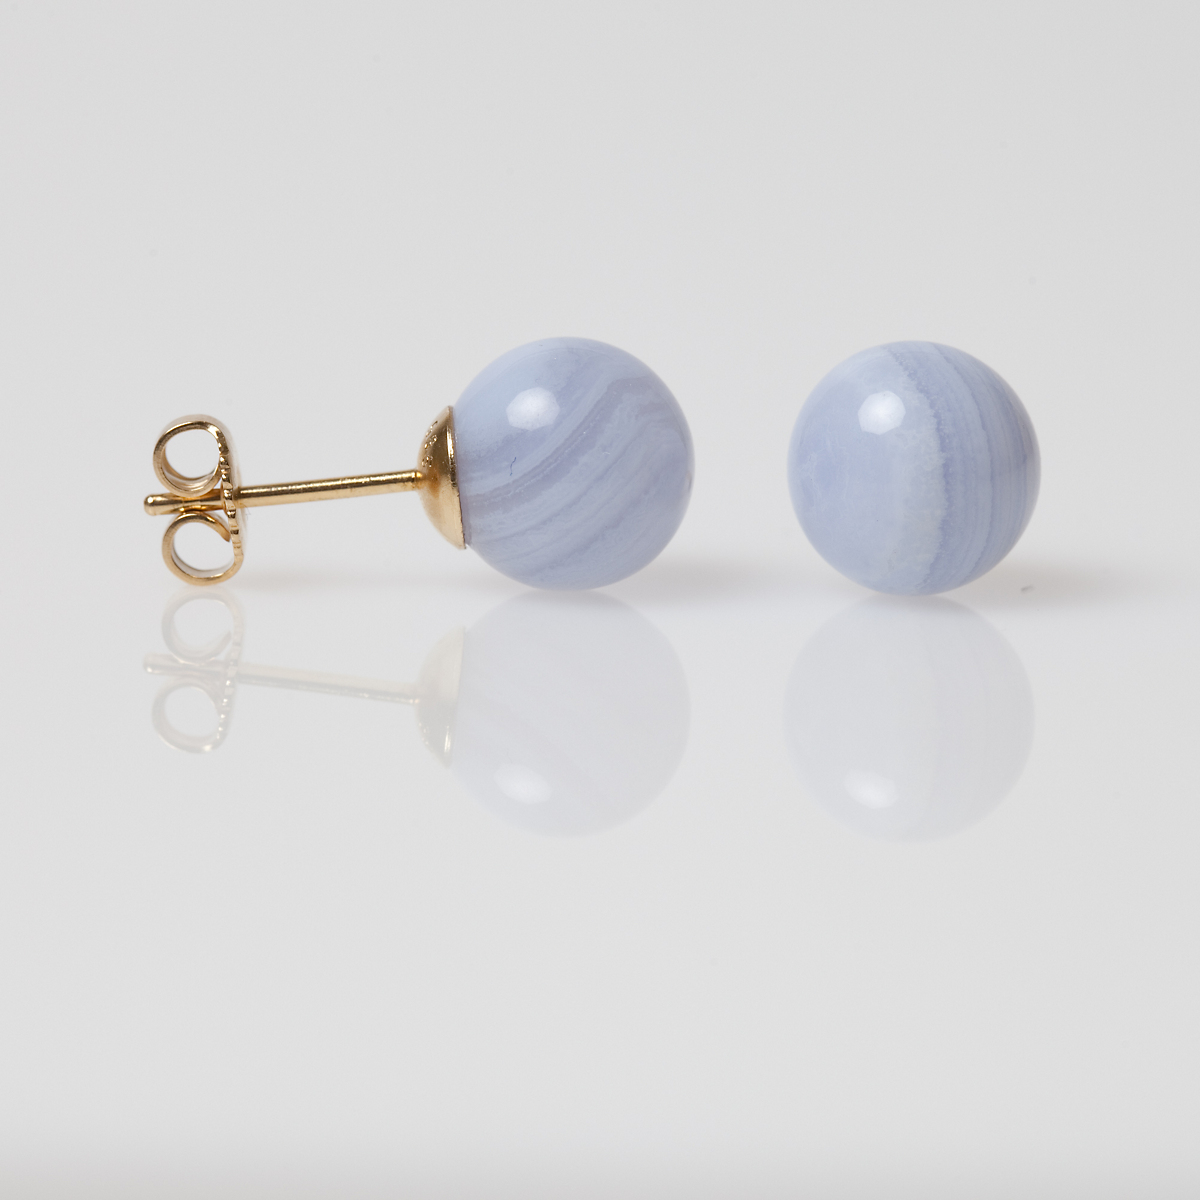 Gump's Blue Lace Agate Earrings